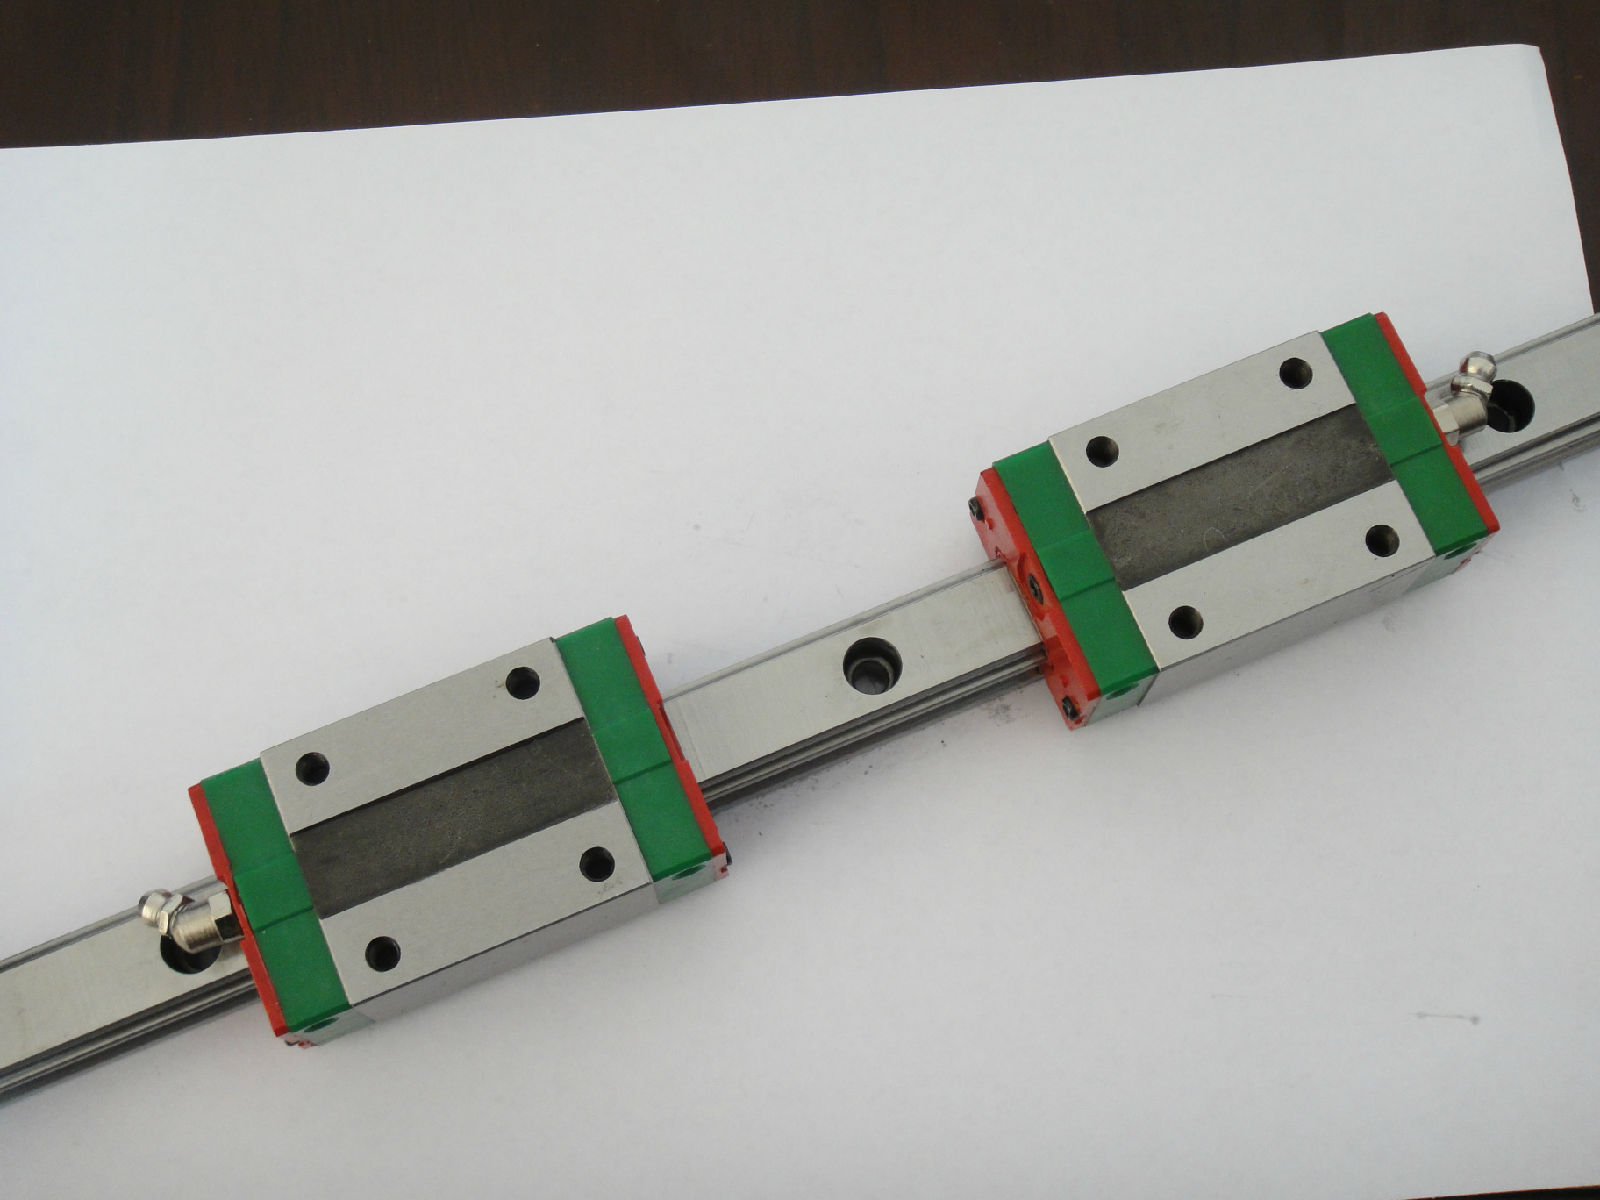 100% genuine HIWIN linear guide HGR30-1000MM block for Taiwan 100% genuine hiwin linear guide hgr30 800mm block for taiwan